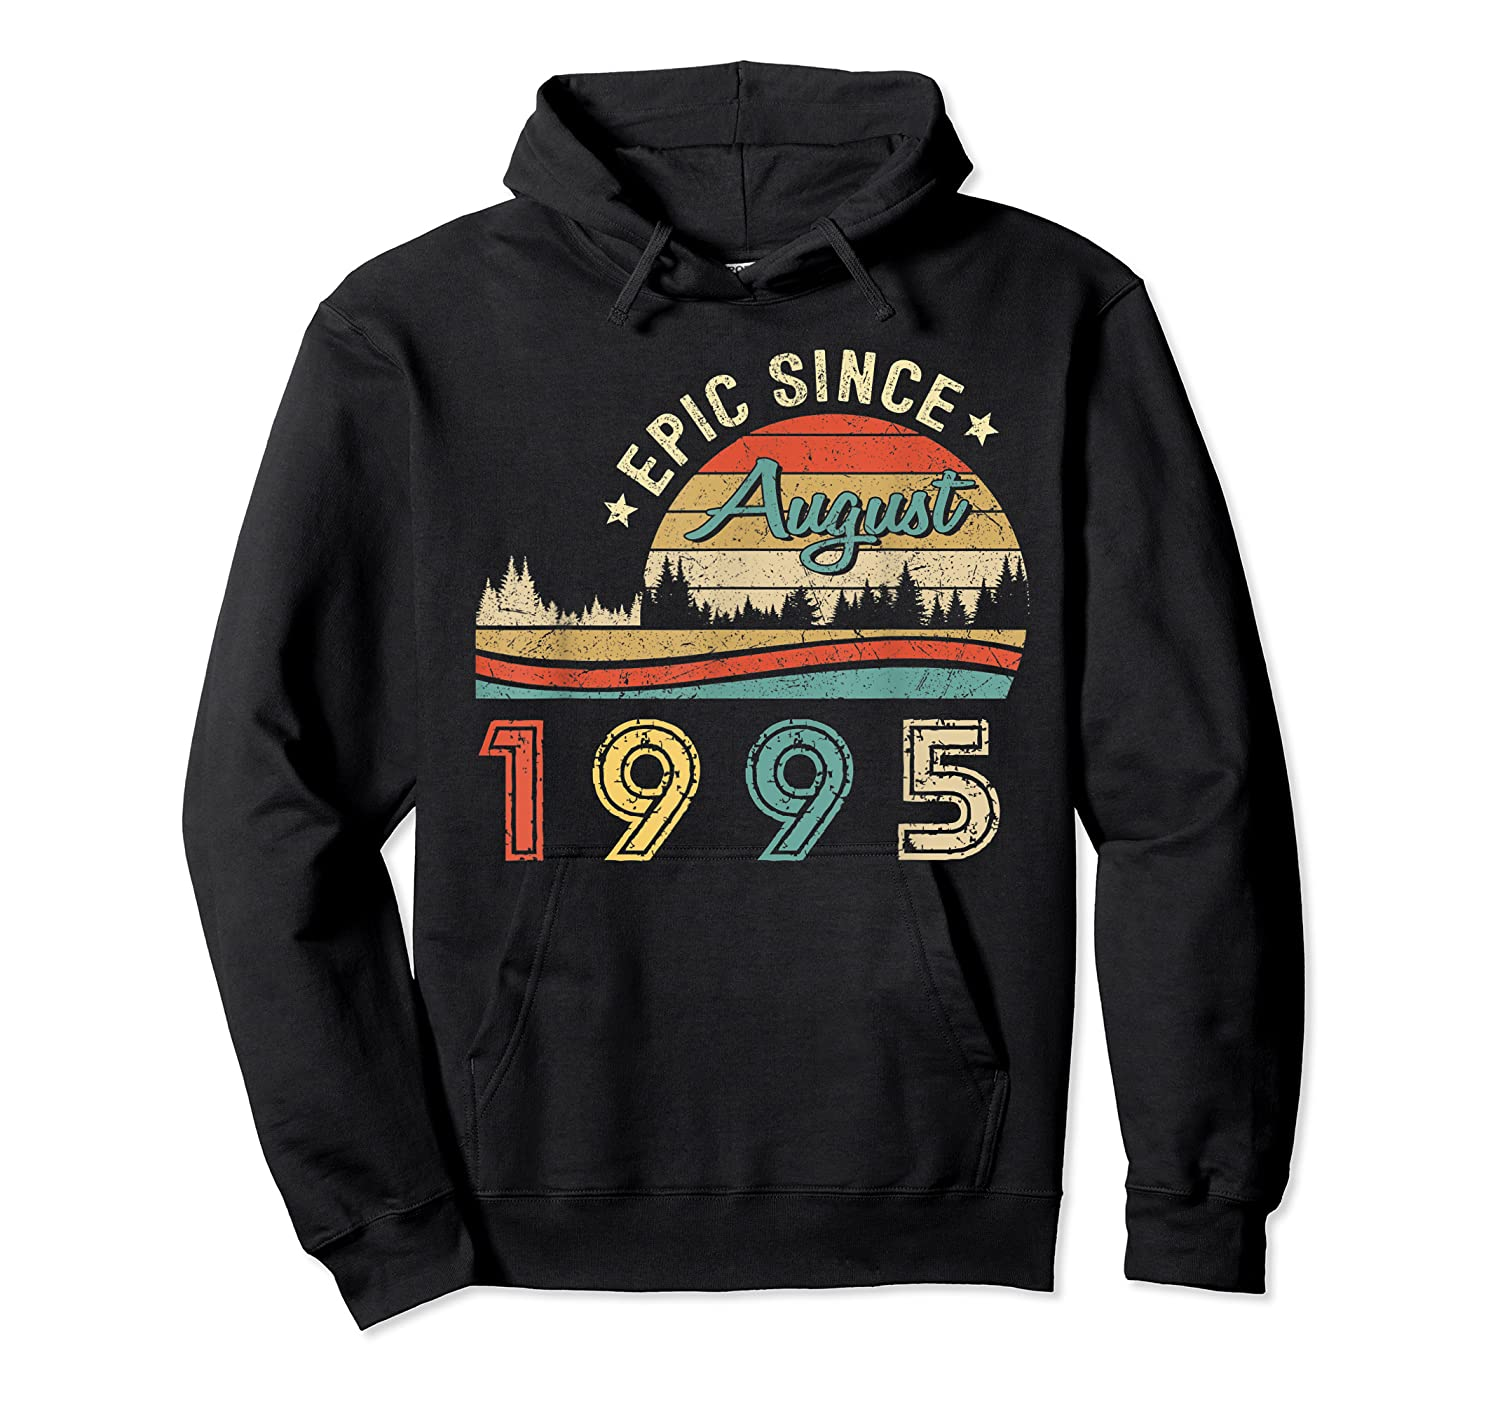 Epic Since August 1995 Tshirt 24 Years Old Shirt Birthday Gi Unisex Pullover Hoodie